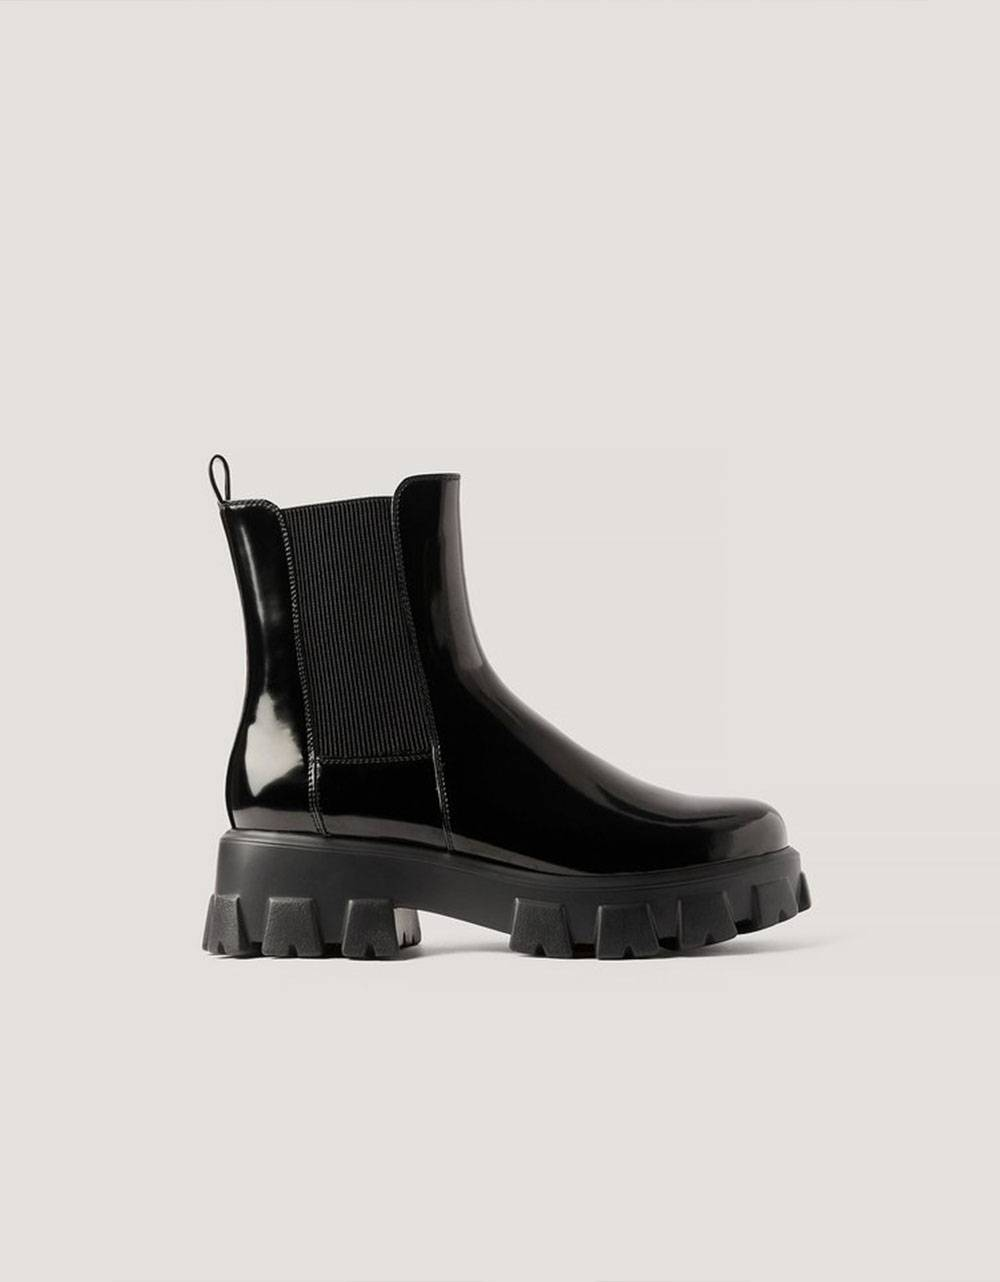 NA-KD chunky sole boots - black NA-KD Other shoes 77,87€